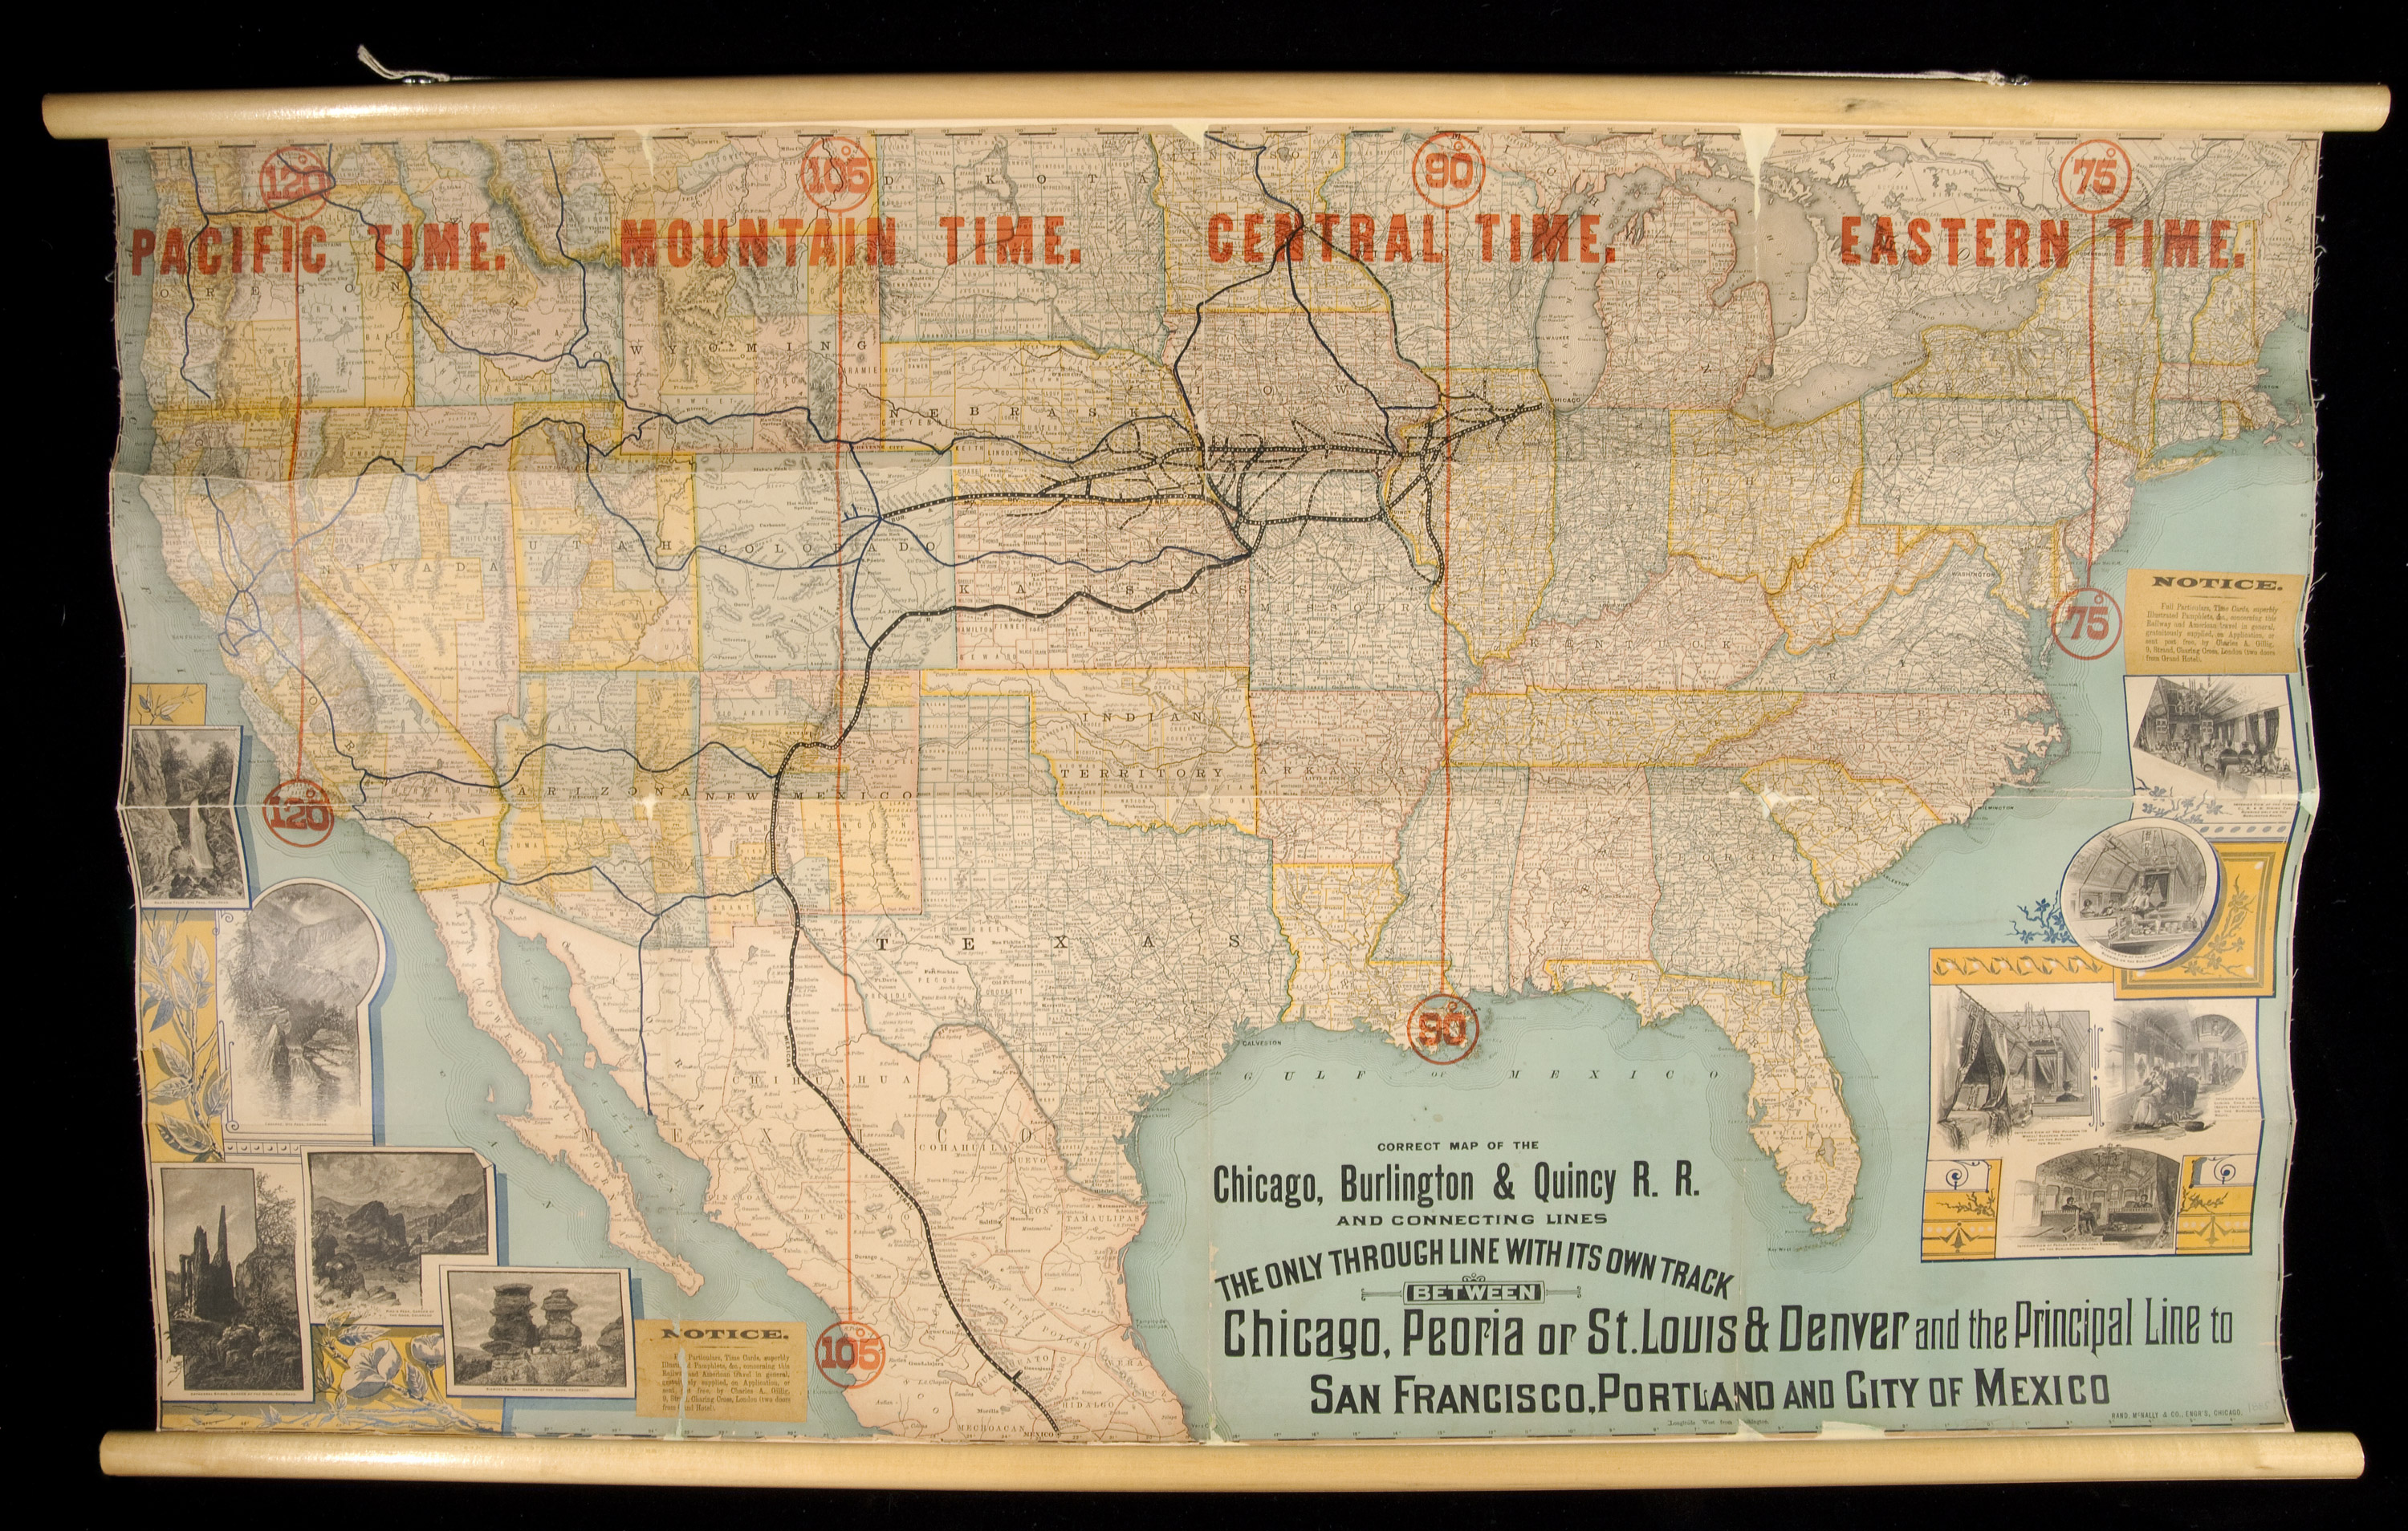 Adoption Of Railroad Time Environment  Society Portal - Chicago map time zone